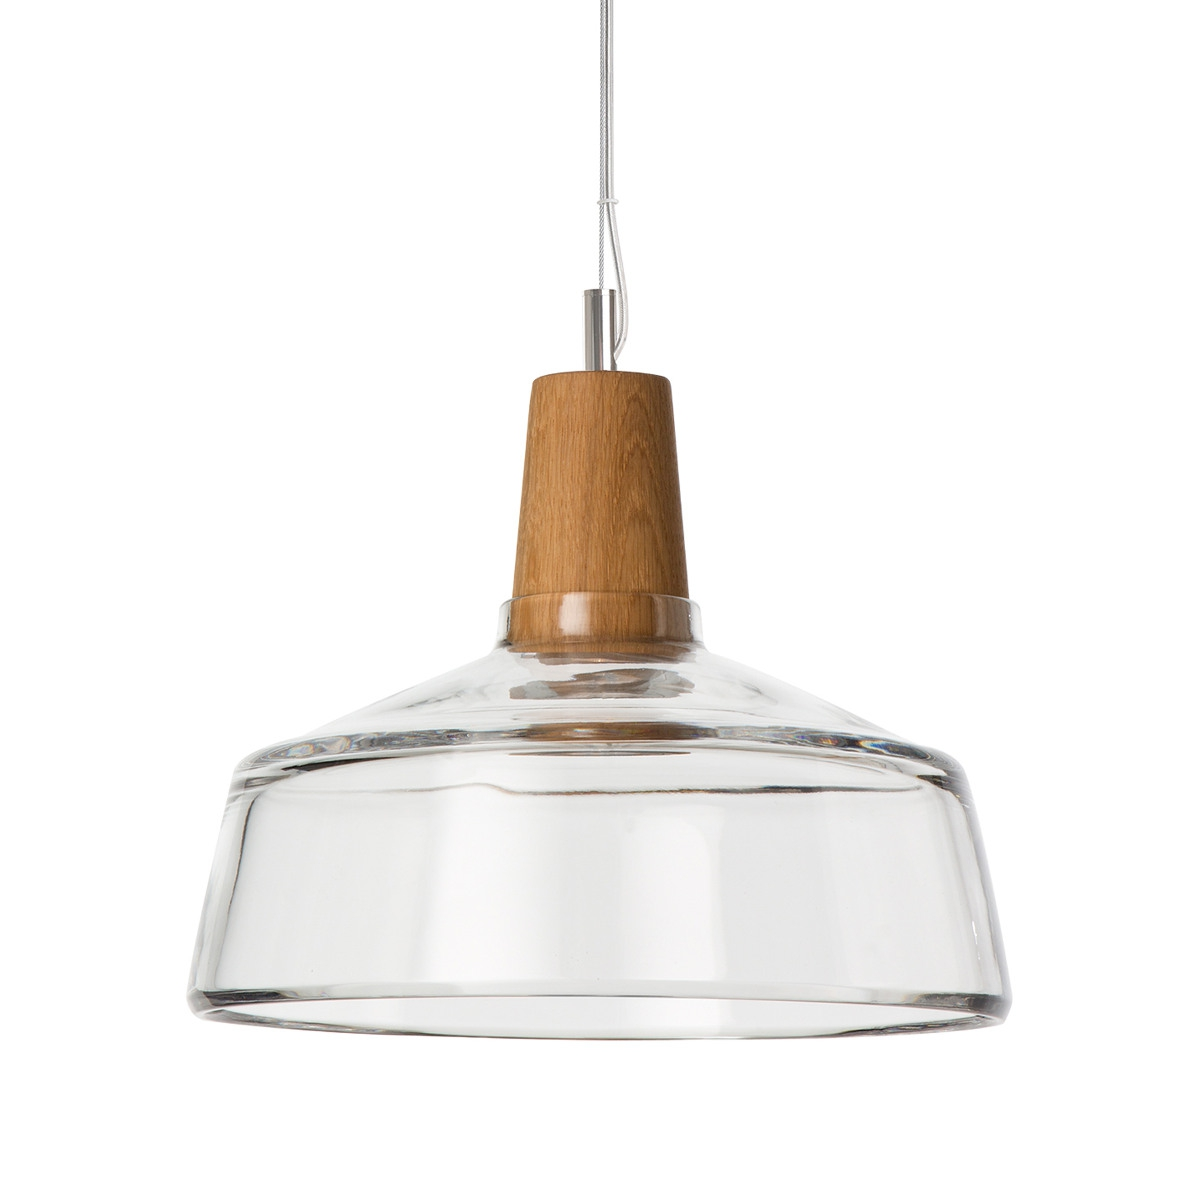 Suspension industrielle en bois et en verre souffl for Suspension bois luminaire